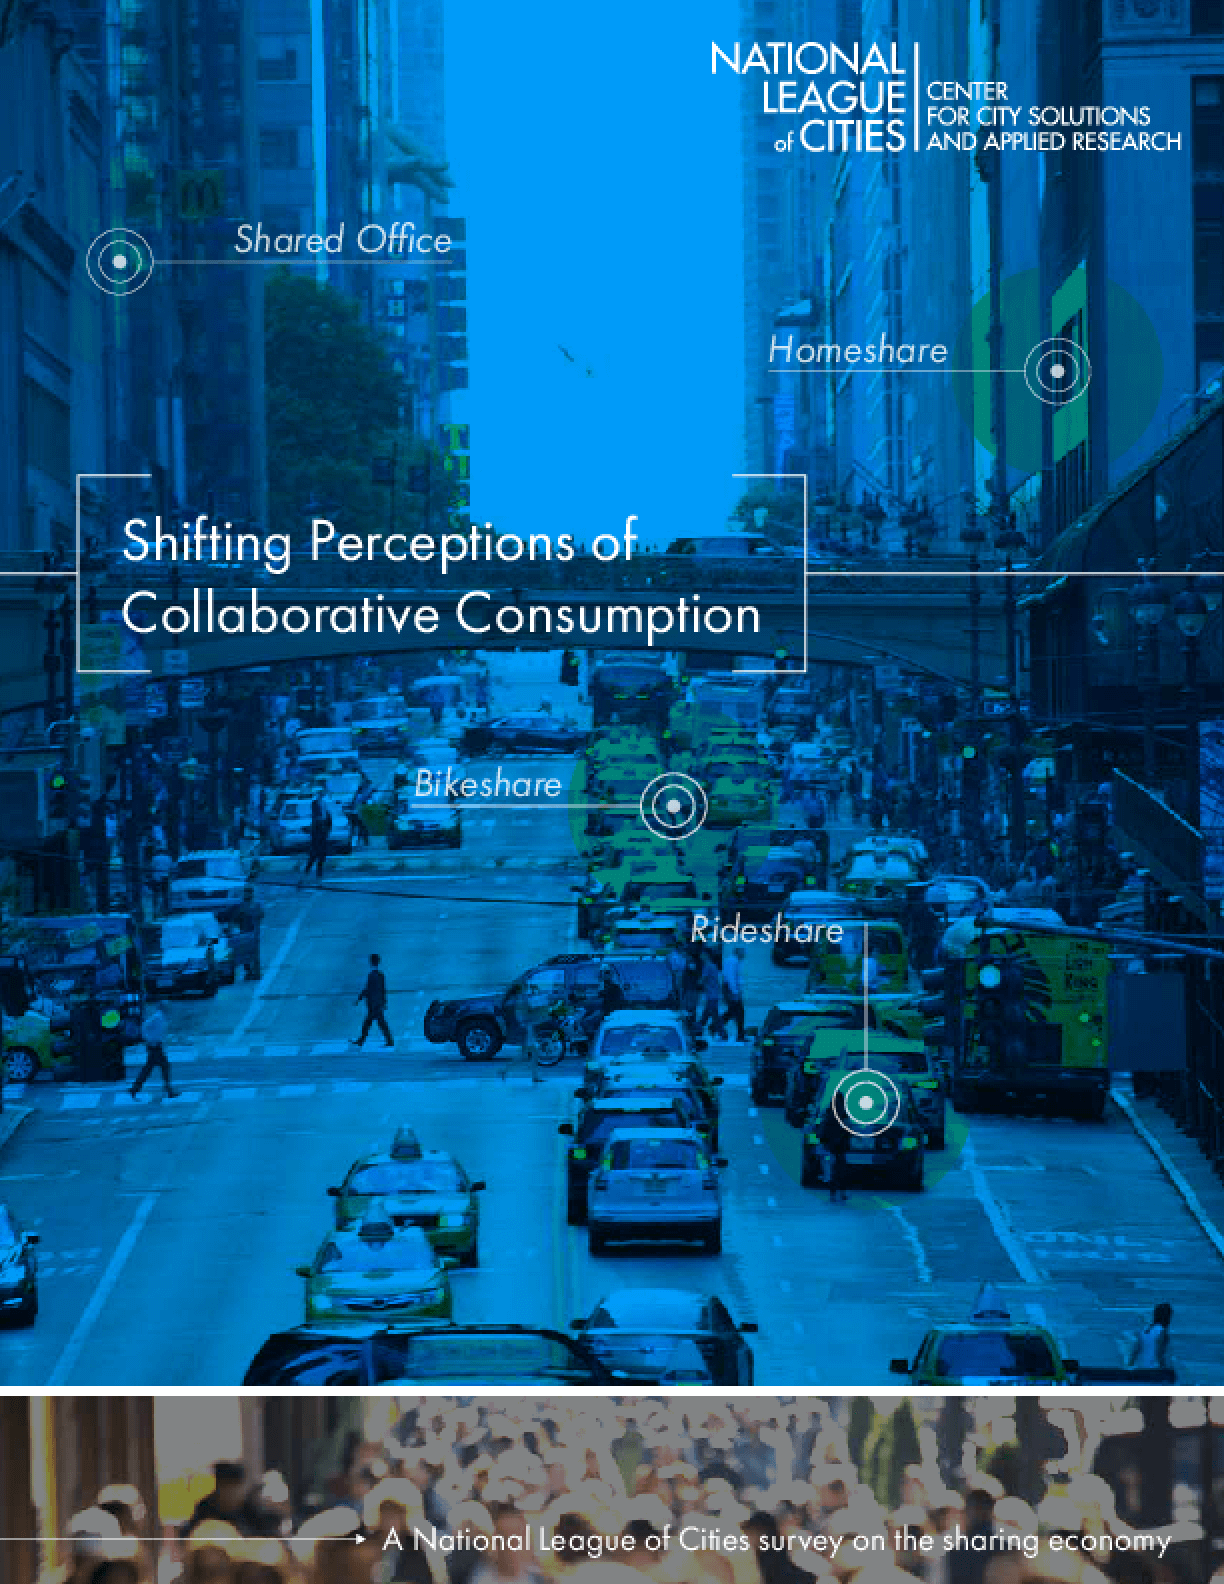 City Survey on the Sharing Economy: Shifting Perceptions of Collaborative Consumption